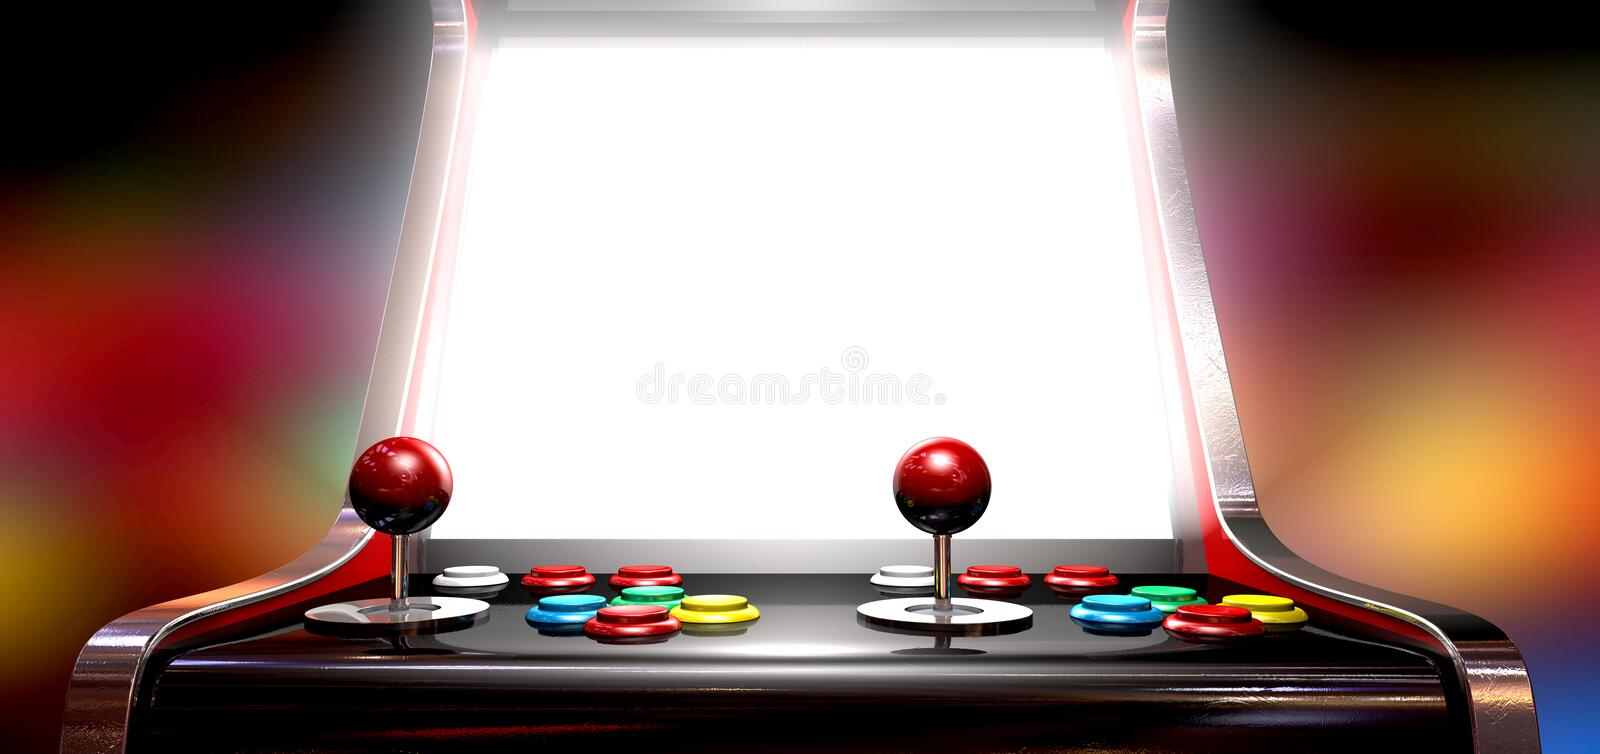 Arcade Game With Illuminated Screen Images stock